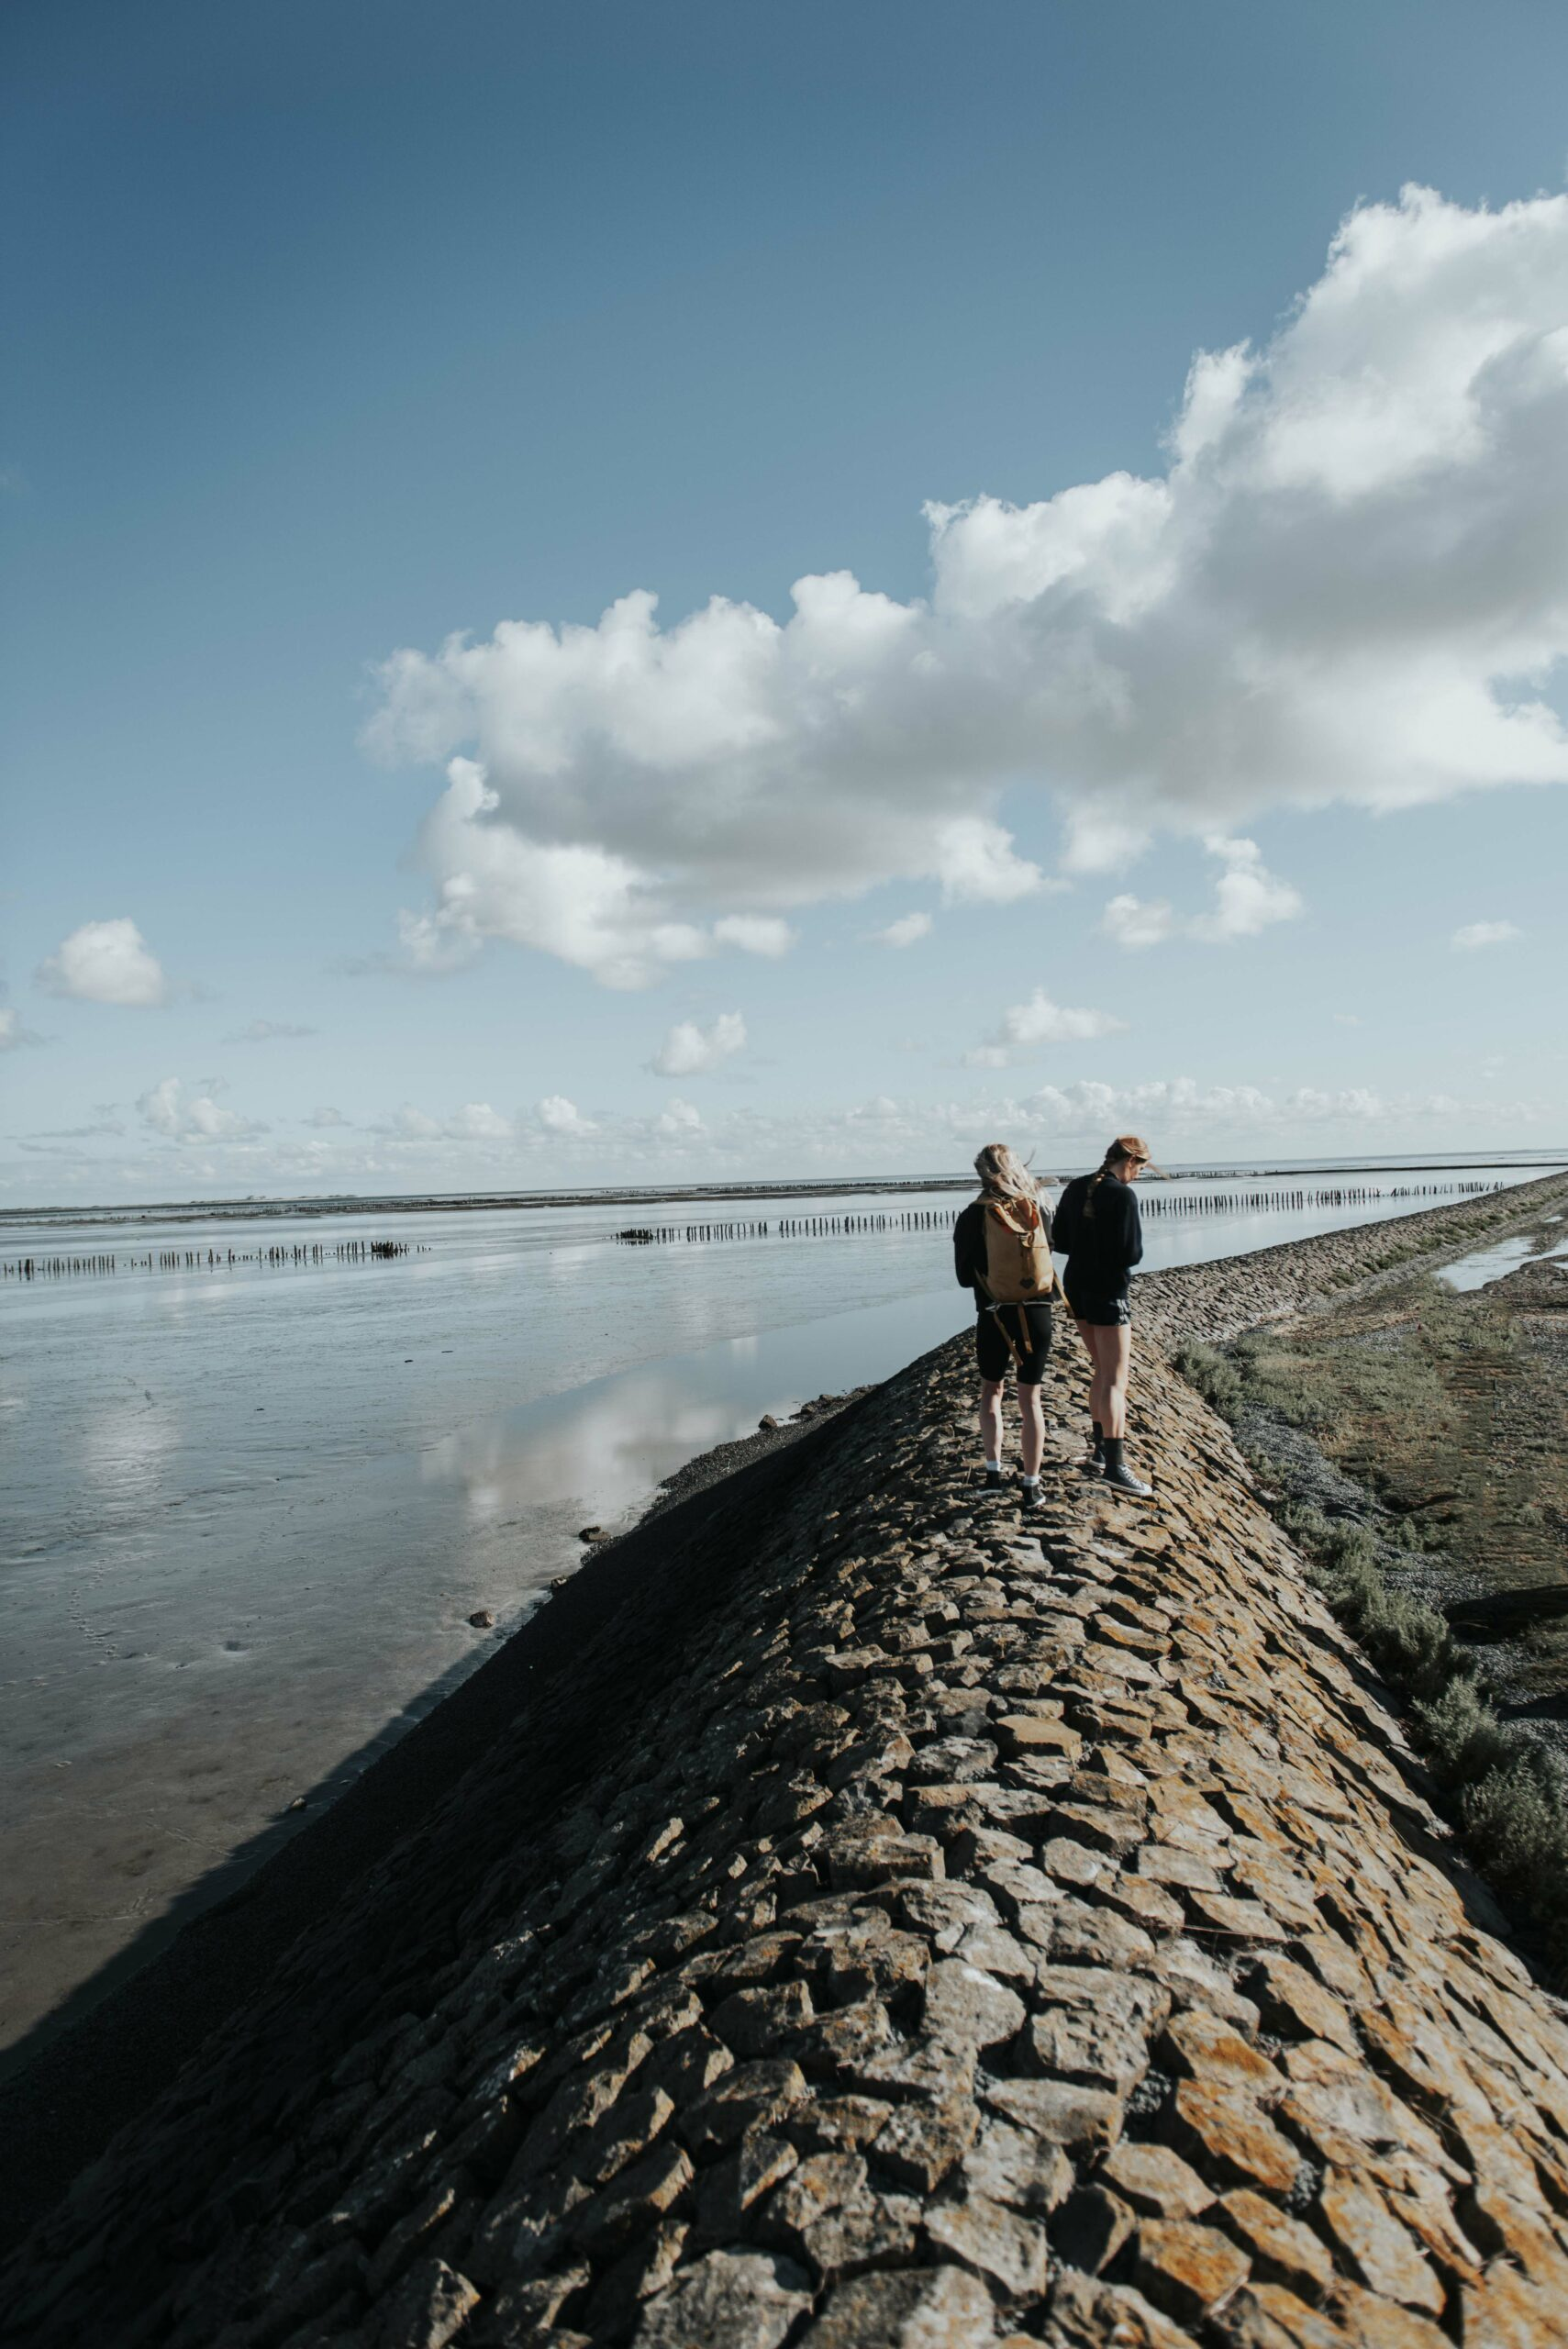 Weekend Fotoworkshop Wadden Say Wad - ROCKY ROADS TRAVEL